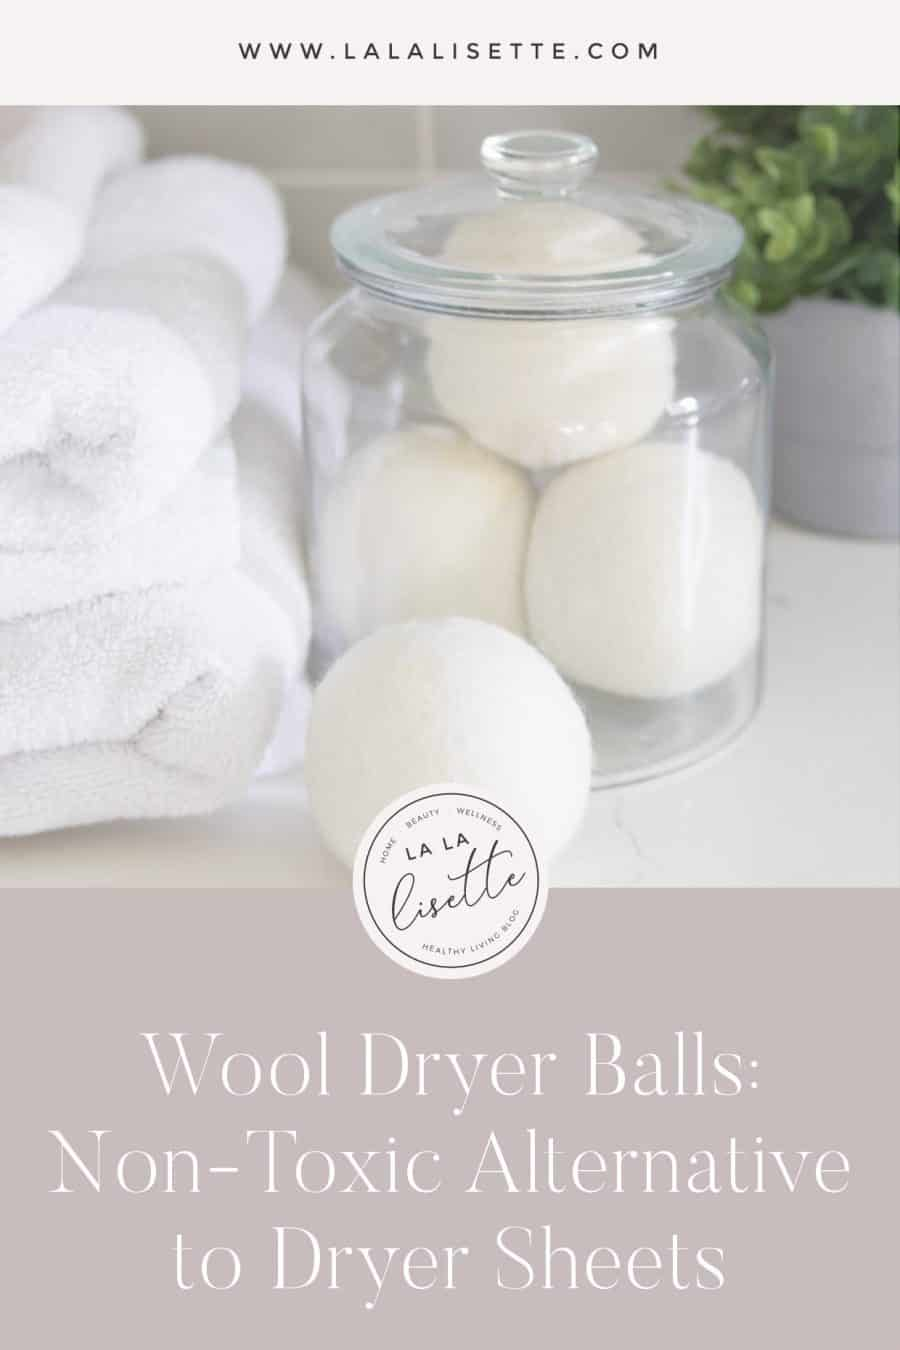 Wool Dryer Balls: Non-Toxic Alternative to Dryer Sheets